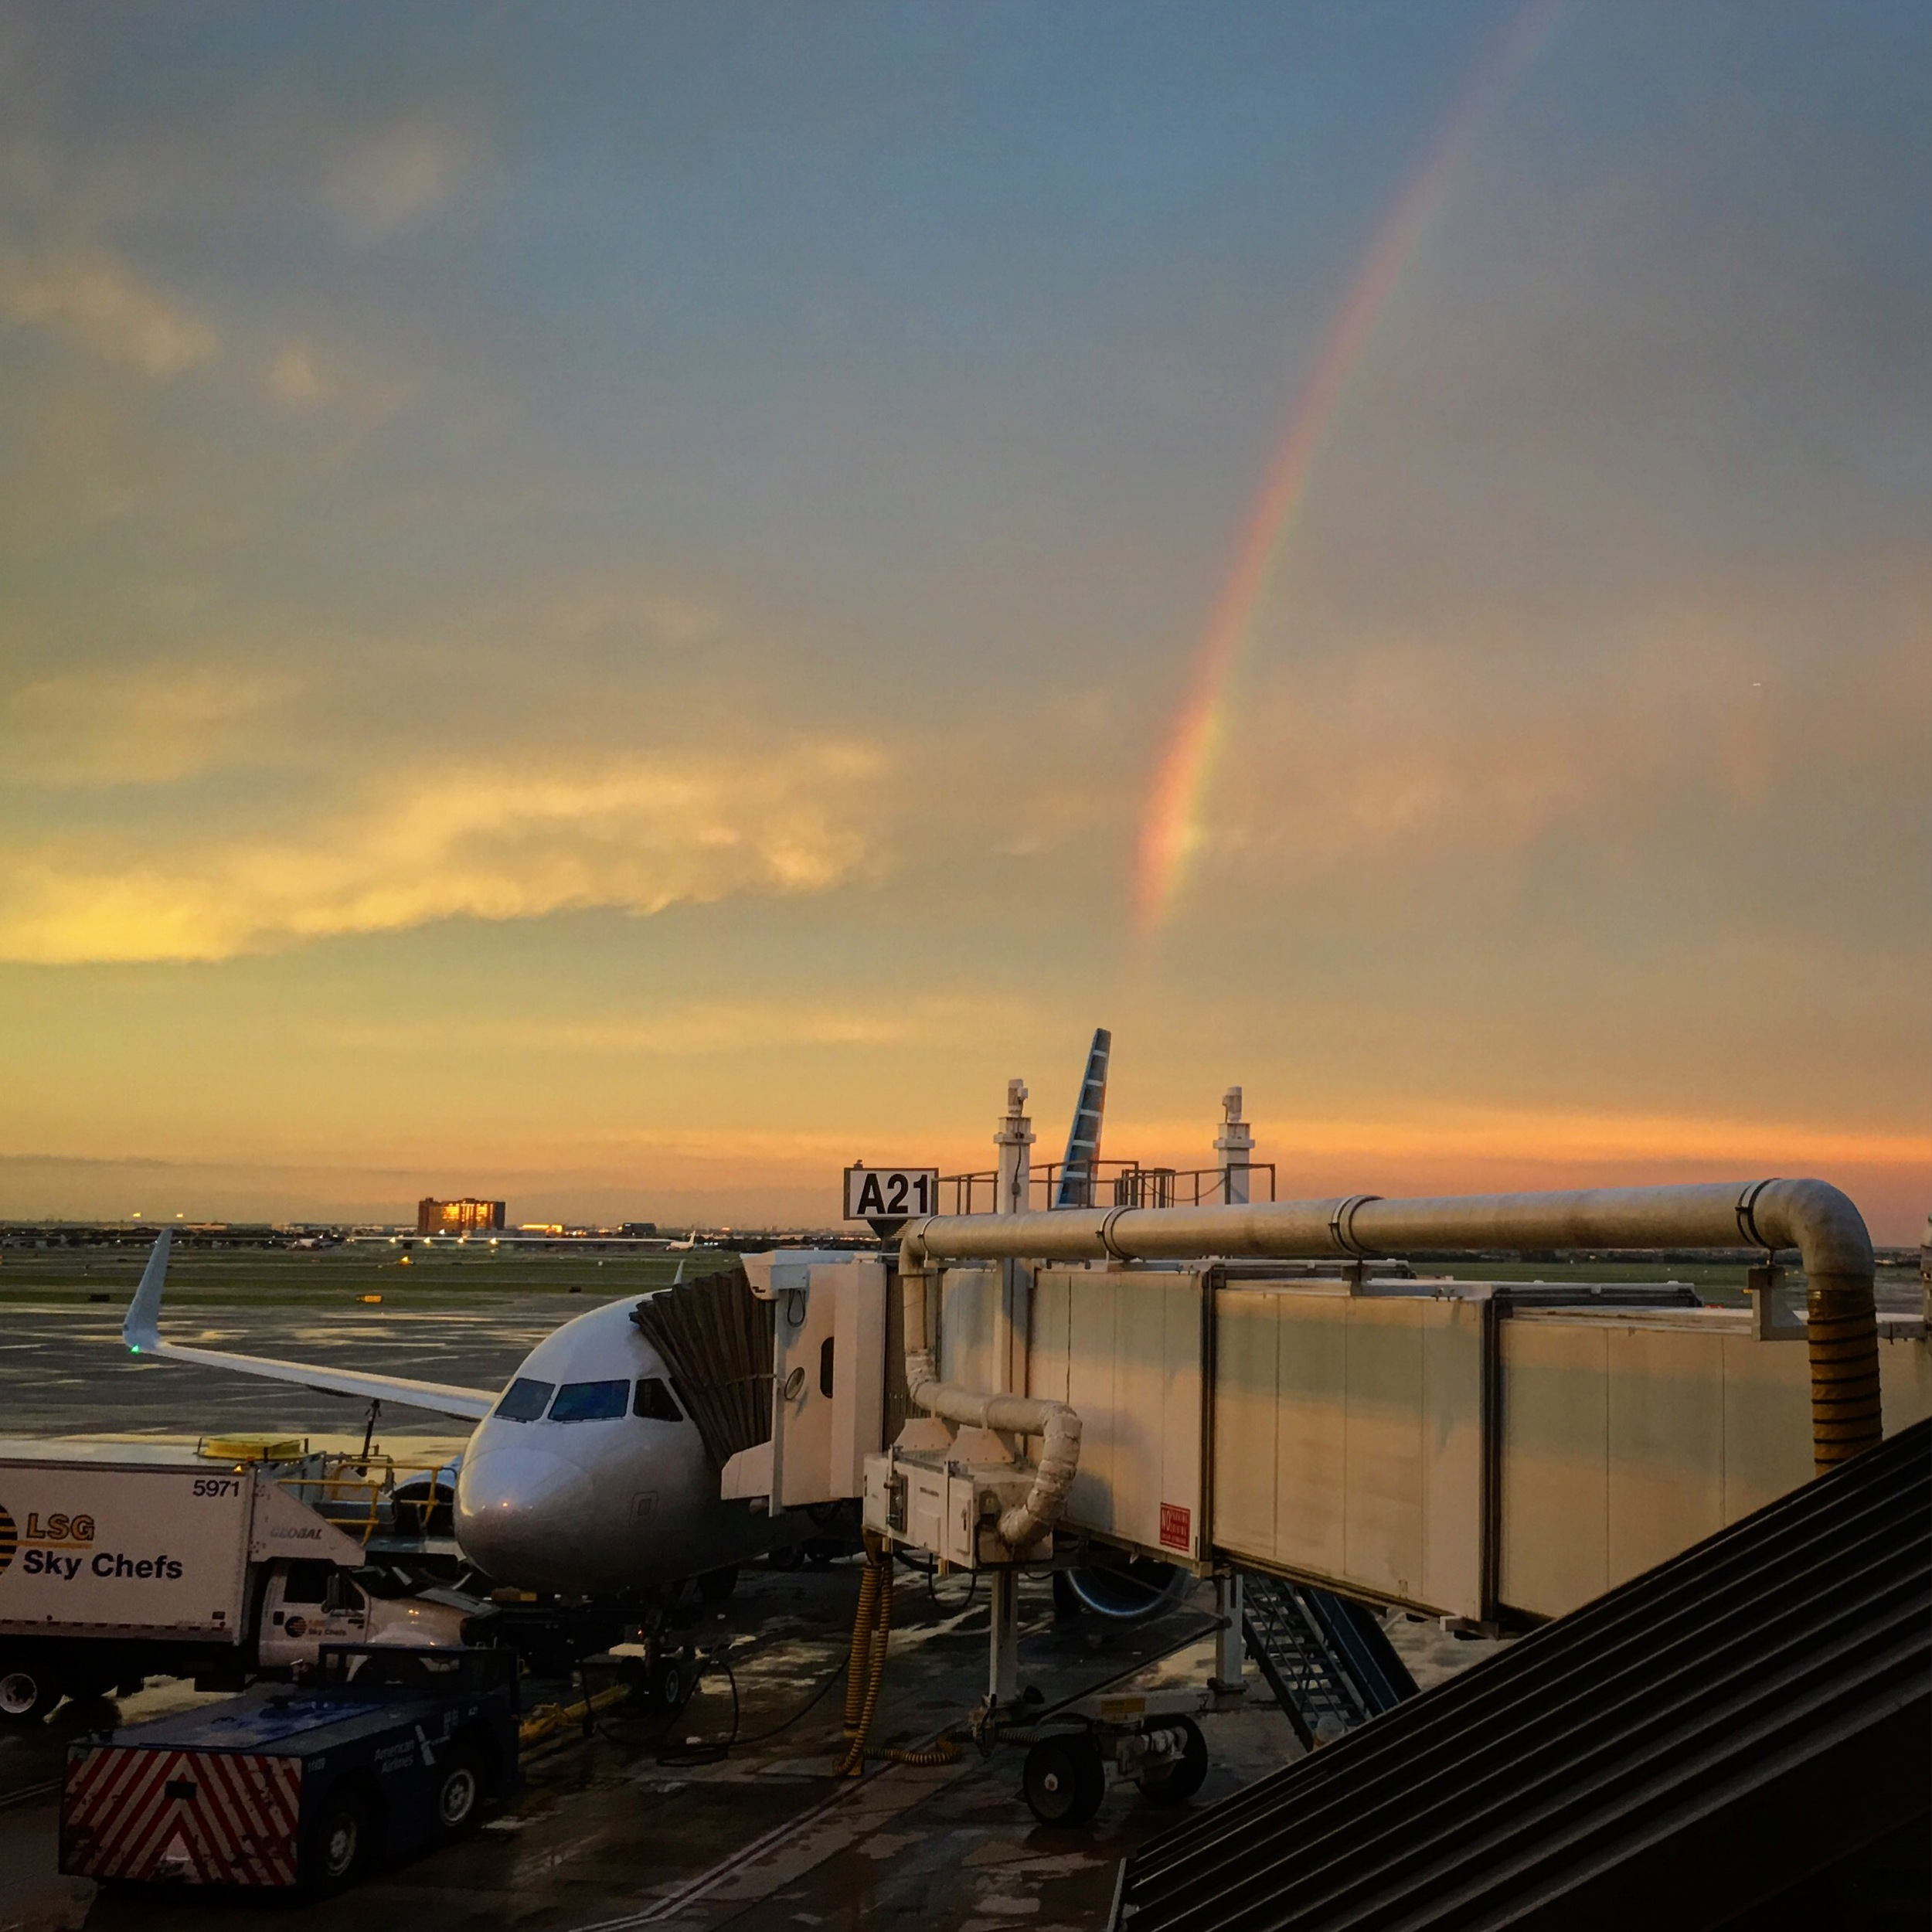 Returning home from Jordan's Celebration of Life, yet another rainbow greeted me in DFW on July 9th, 2016. All it took was meeting Jordan once to know that everything that everyone had said about him was true. I wish I could have known him better, but I'll always cherish the one time that we were able to meet and connect. Fly high, Scorpio, and keep shining.